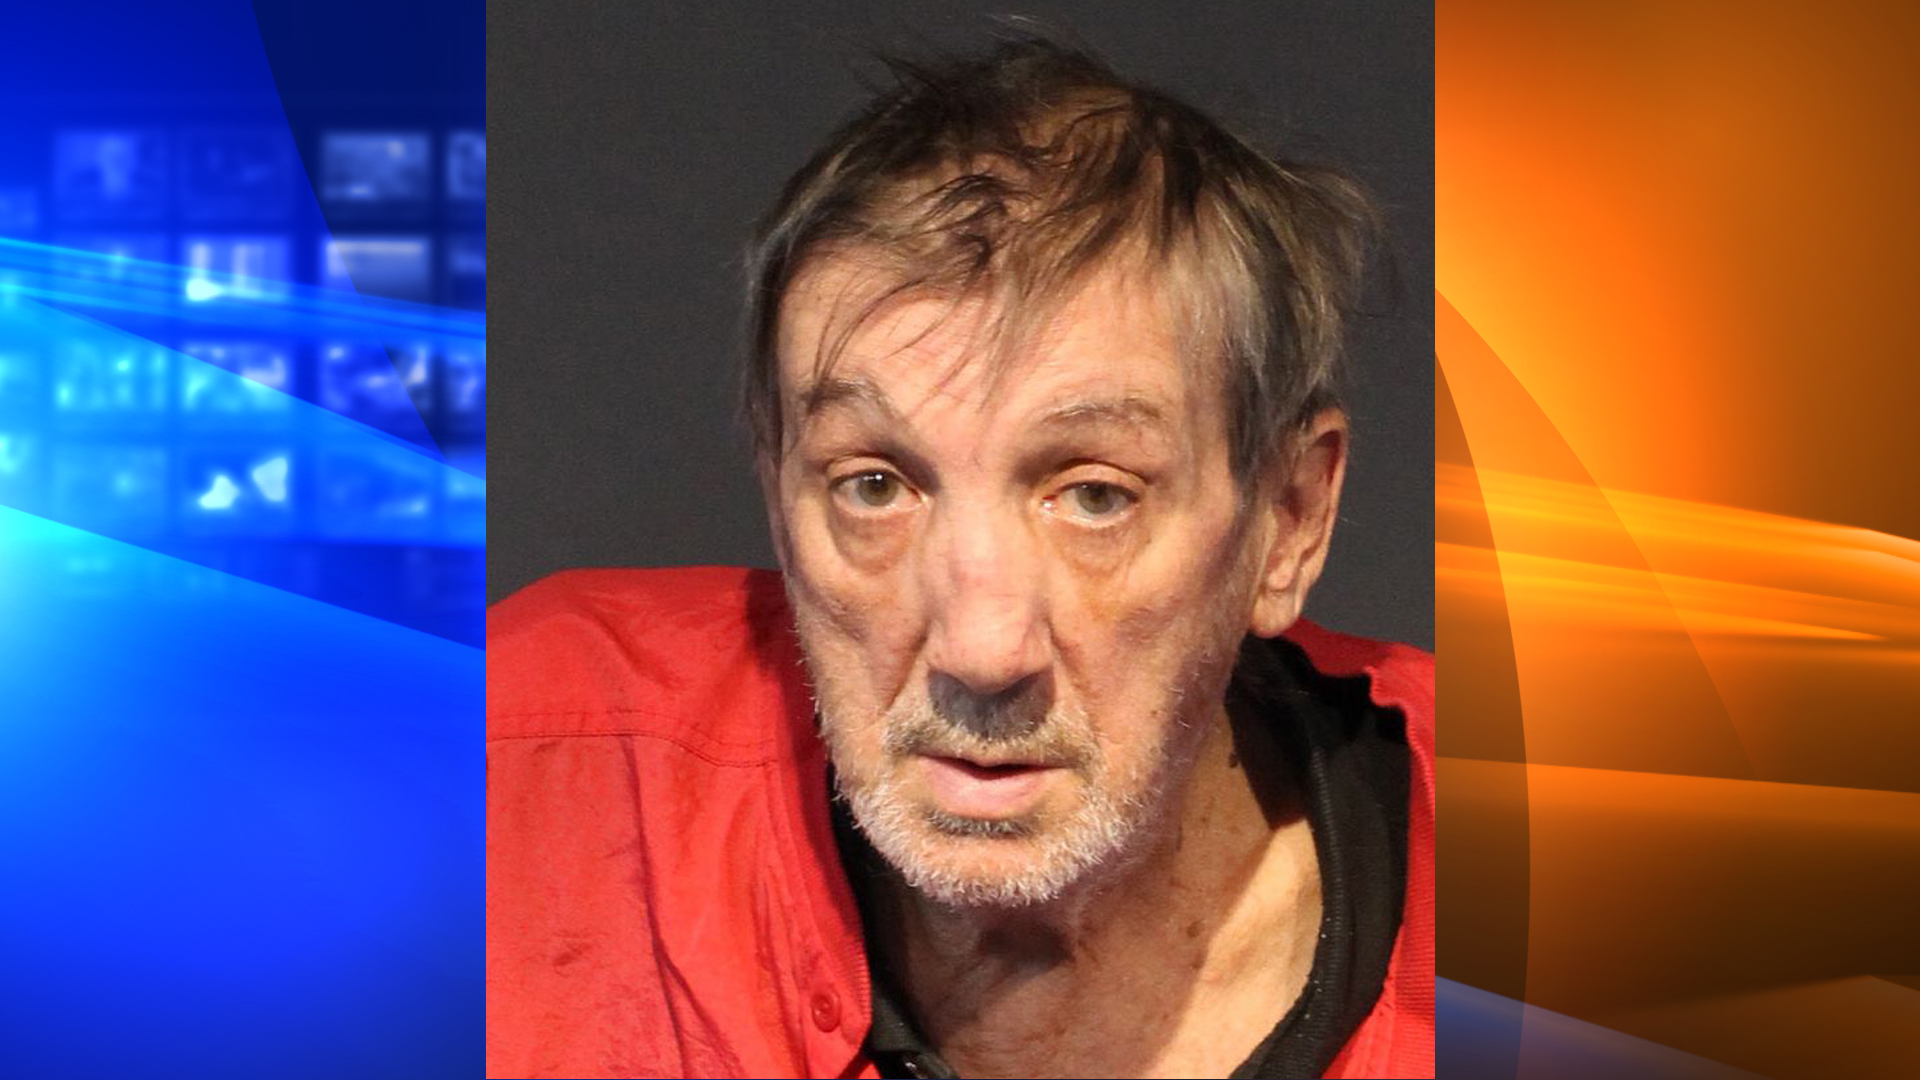 Ralph Goad is seen in a booking photo released by the Washoe County Sheriff's Office.